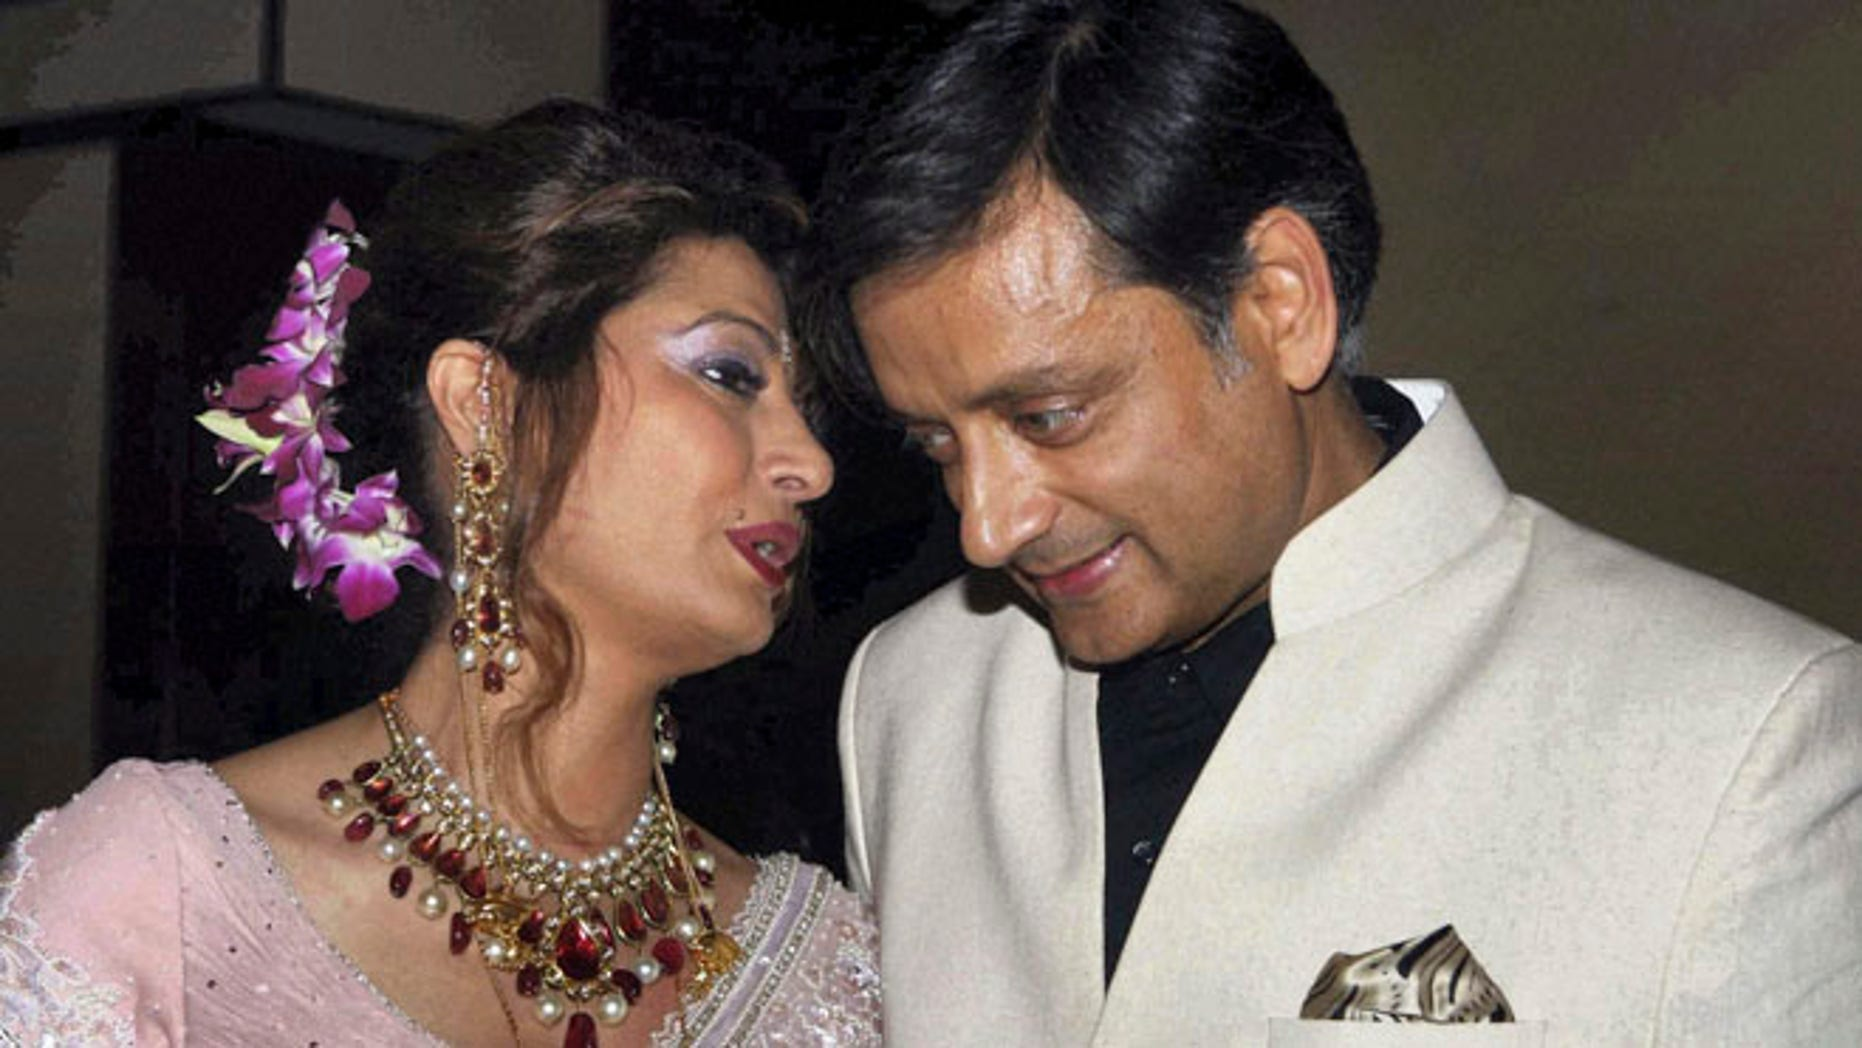 Sept. 4, 2010: In this file photo, former Indian Junior Foreign Minister Shashi Tharoor listens to his wife Sunanda Pushkar at their wedding reception in New Delhi, India.